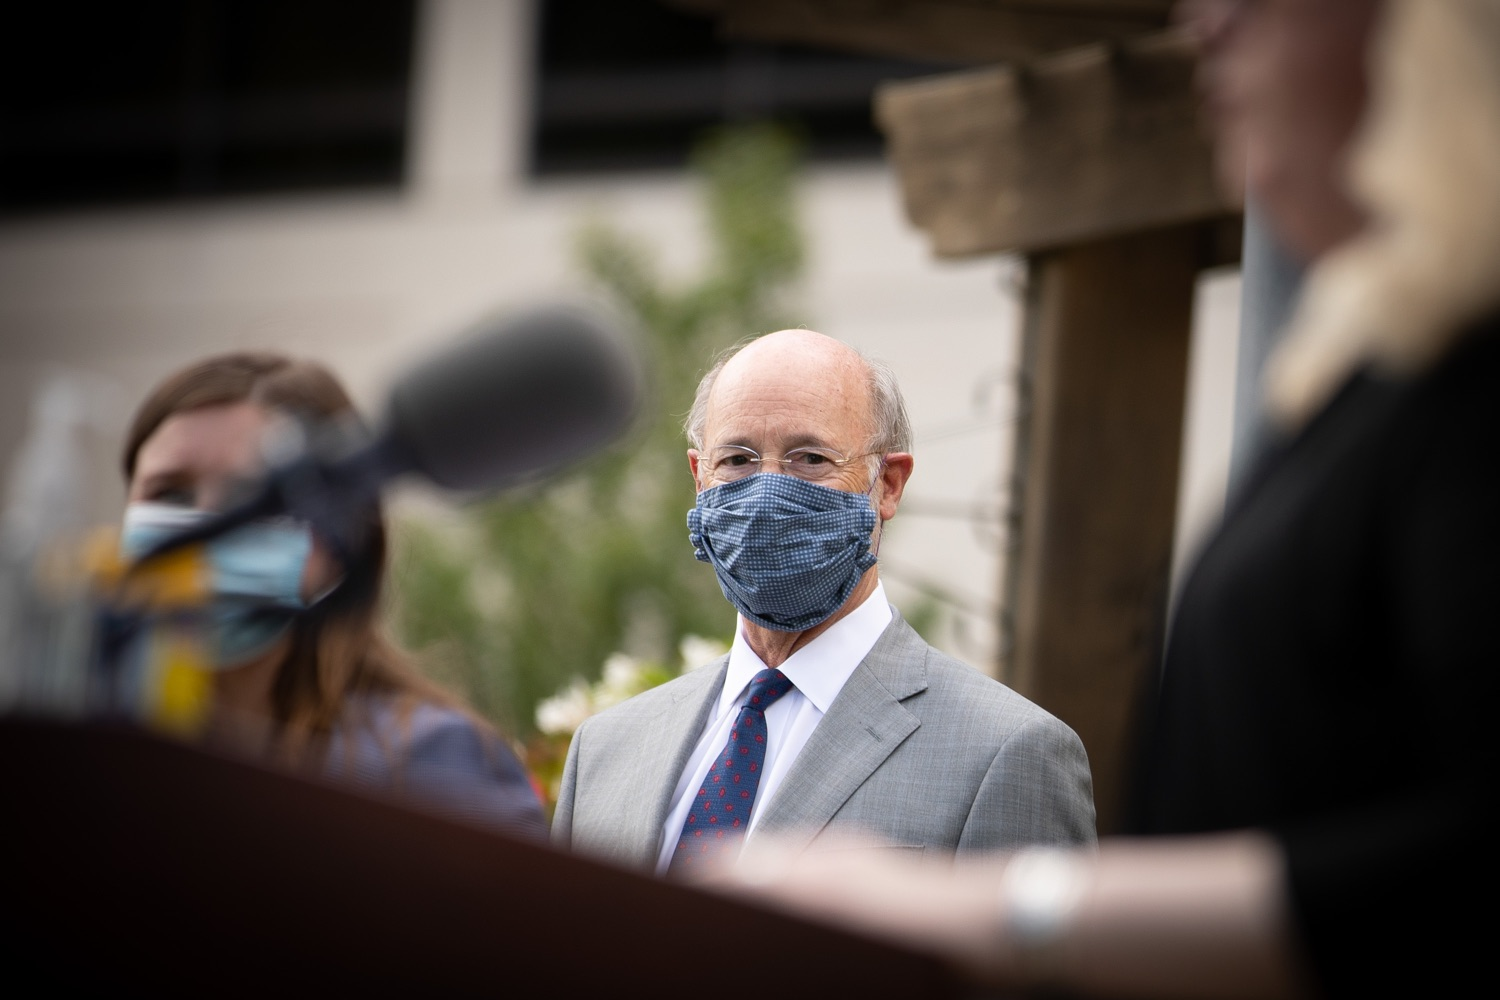 "<a href=""https://filesource.wostreaming.net/commonwealthofpa/photo/18093_gov-healthcare_workers_dz_17.jpg"" target=""_blank"">⇣ Download Photo<br></a>Pennsylvania Governor Tom Wolf listening to speakers during his visit to Milton S. Hershey Medical Center.  As the commonwealth continues its measured, phased reopening and COVID-19 case counts continue to decline, Governor Tom Wolf visited Penn State Milton S. Hershey Medical Center today to thank staff and learn more about how the facility is handling the pandemic and preparing for a possible resurgence in the fall.  Harrisburg, PA  June 24, 2020"